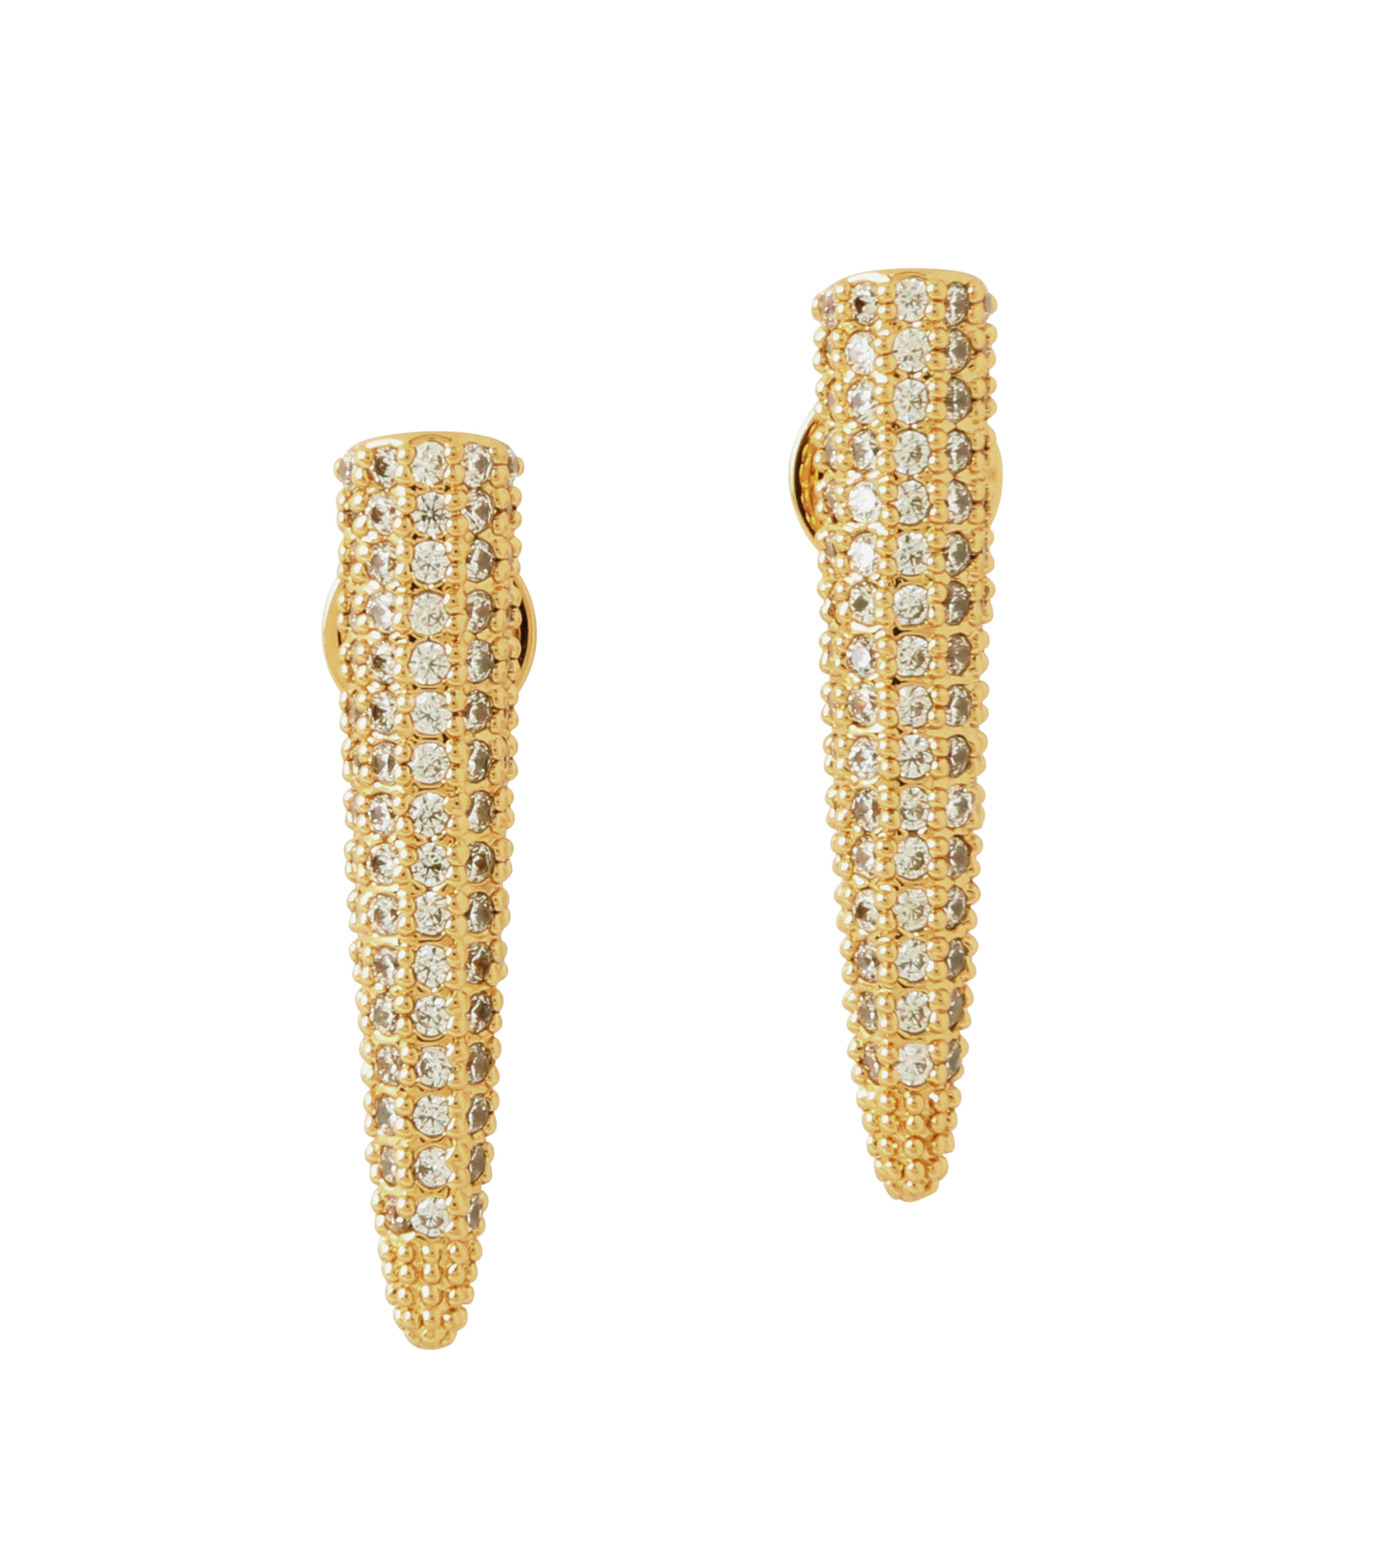 Eddie Borgo(エディ・ボルゴ)のMINI PAVE SPIKE EARRING-GOLD-ER1604P-R-2 拡大詳細画像1